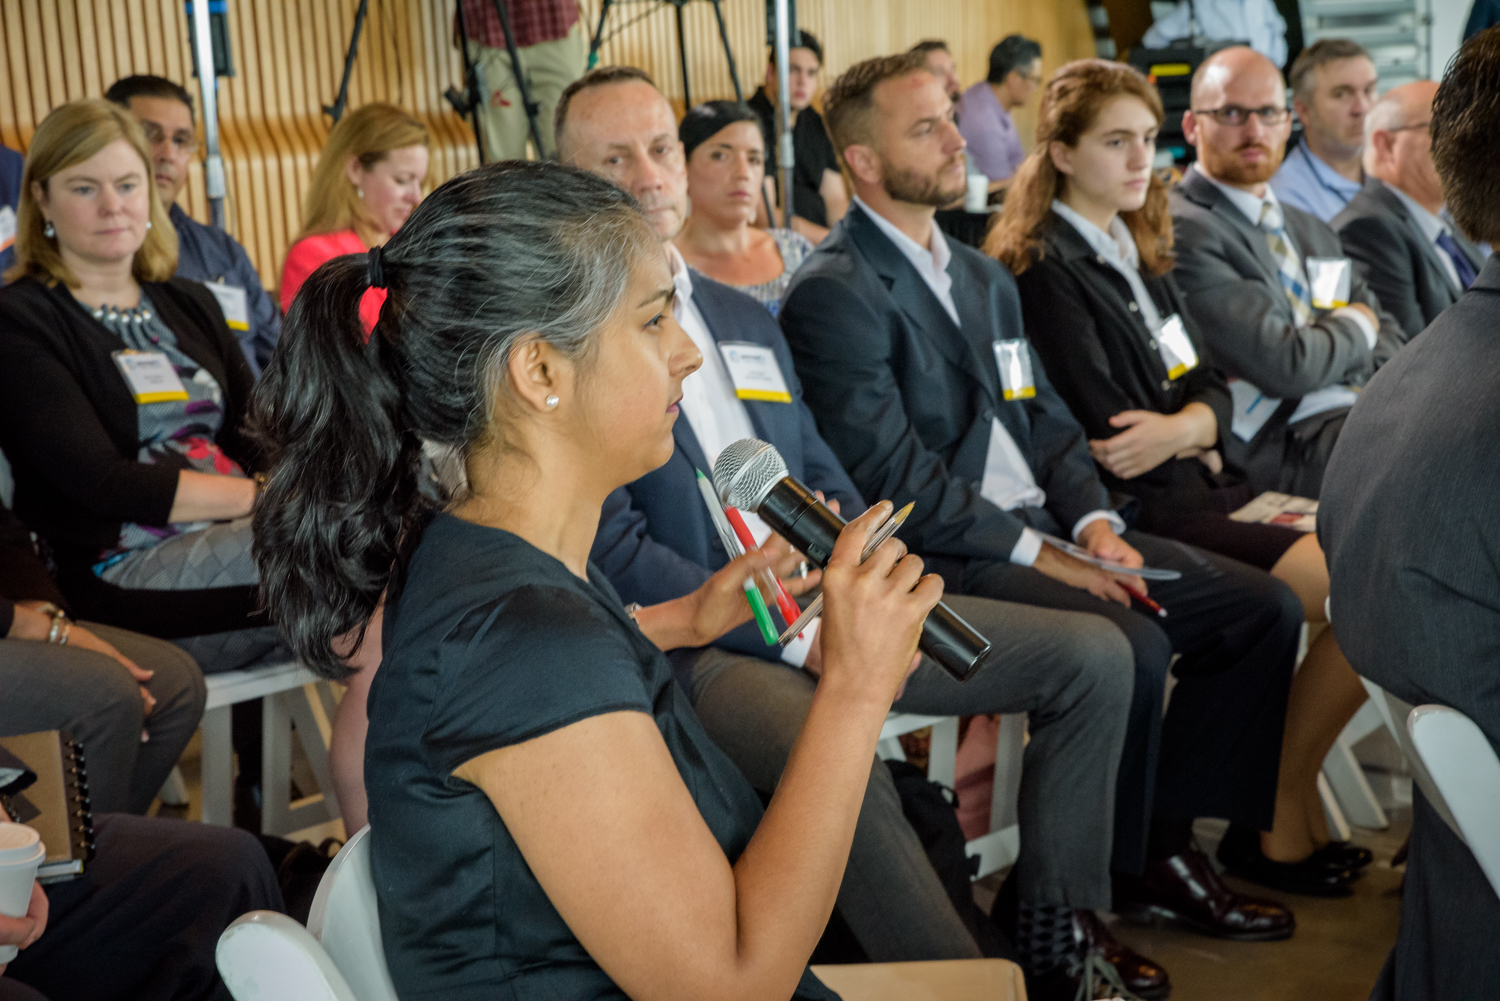 State of Cyber CXO Tech Forum attendee asks a question